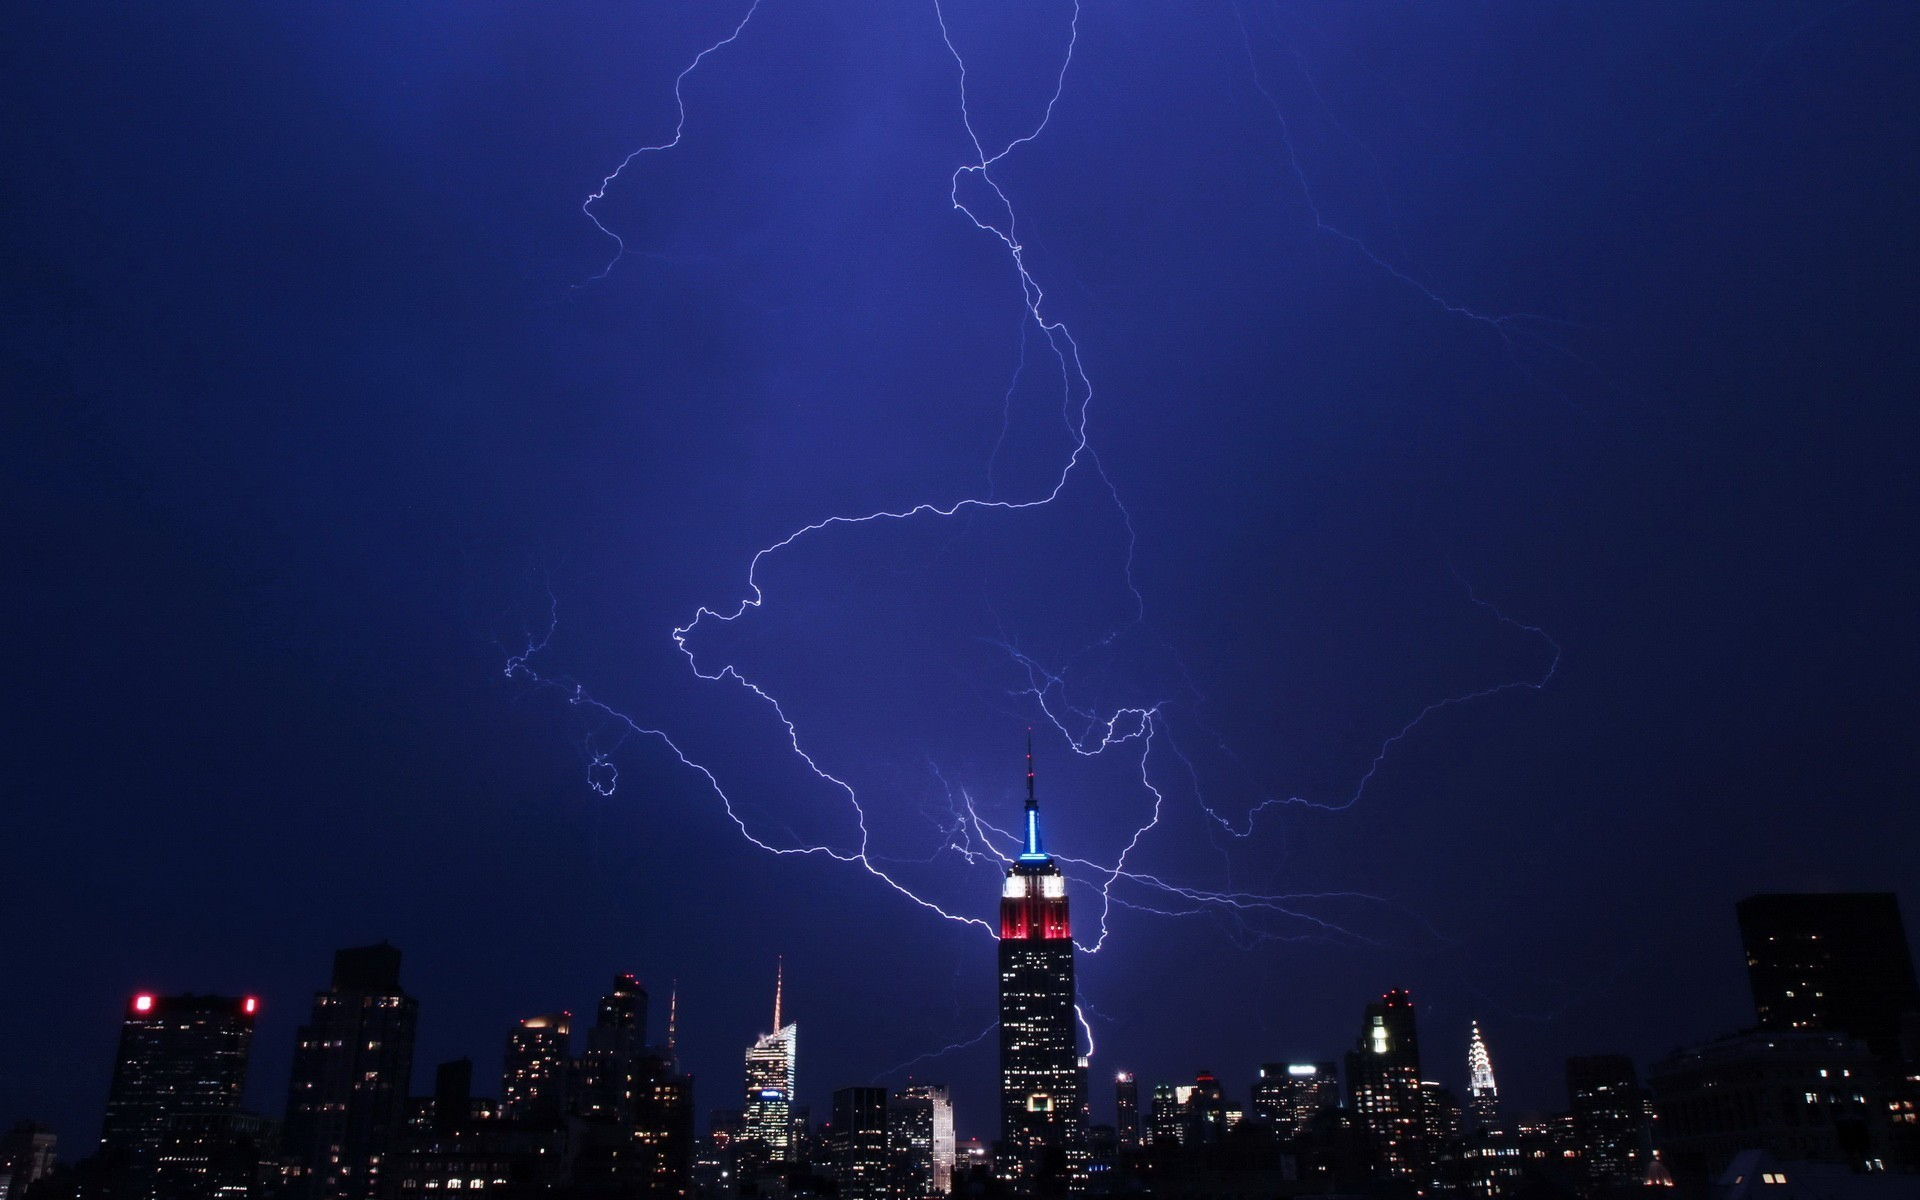 1920x1200 Storm empire state building lightning bolts wallpaper